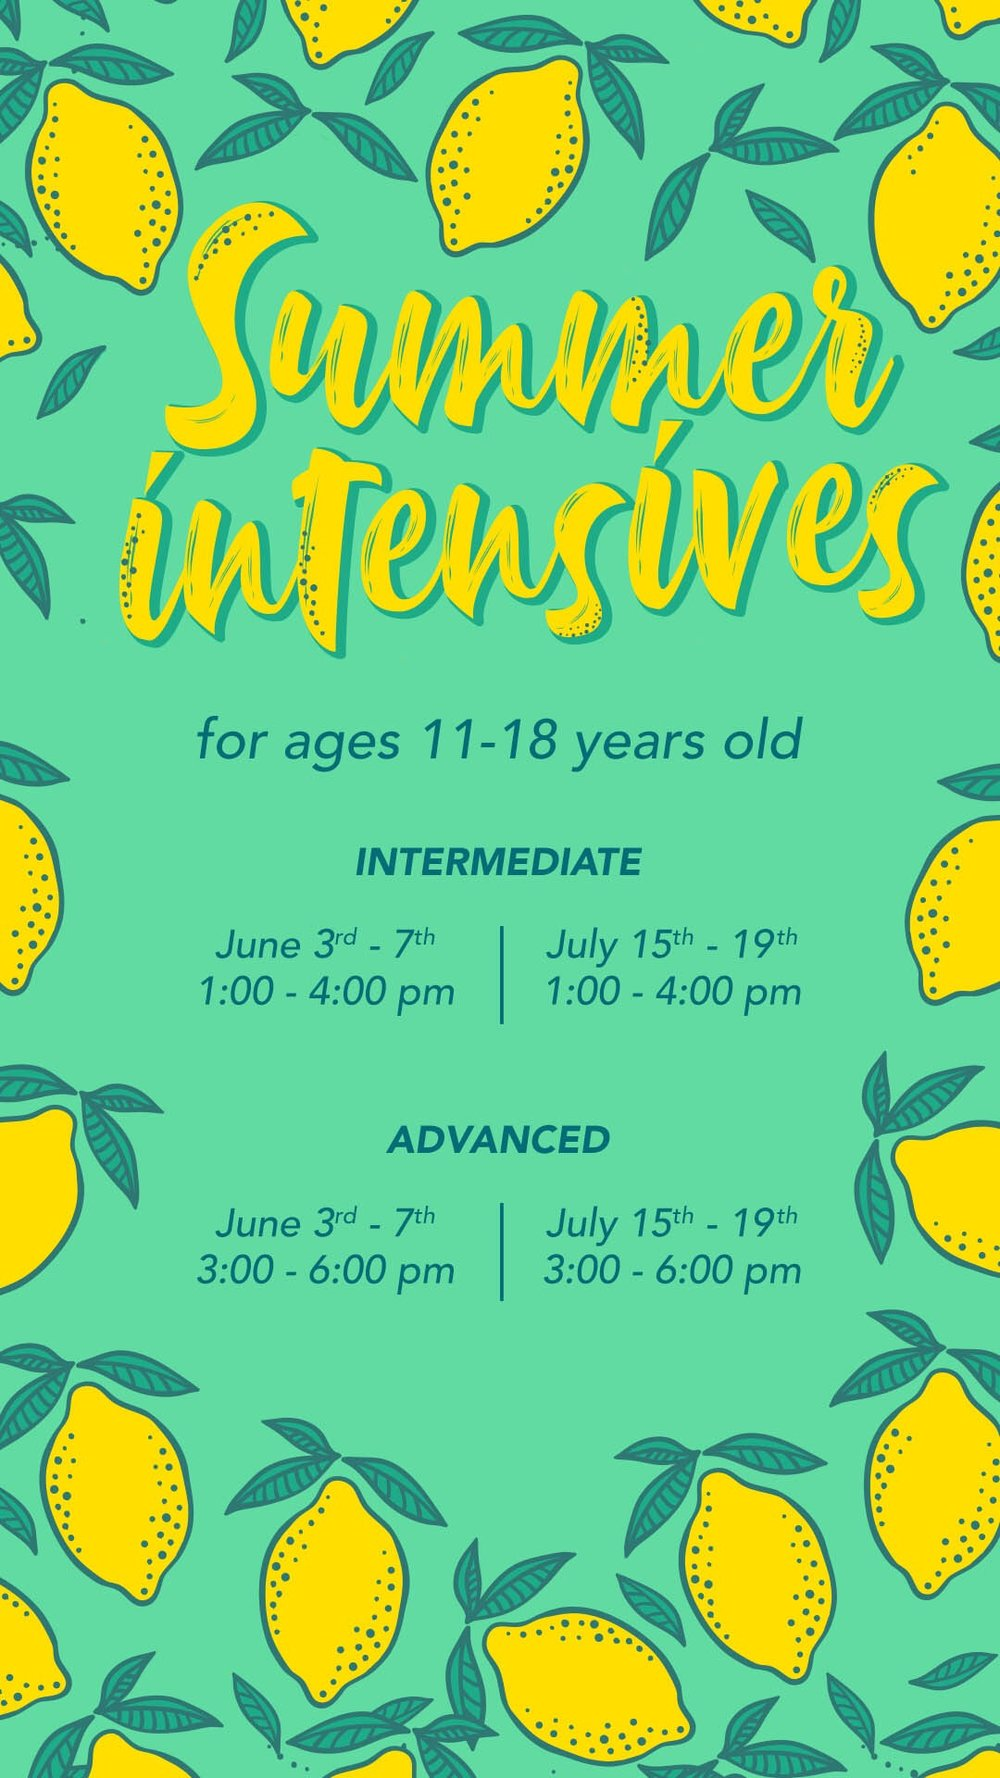 You're Invited! - Summer Intensives (Ages 11-18yrs.)Our Summer Intensive Series is a way for dancers to learn more about our Program through different styles of classes throughout the week. There are two options for dancers to further their training; a one week or two week option. This is a great way for dancers ages 11 and up to experience a new class style or deepen their training knowledge. Dancers will be placed in intensive level upon registration confirmation.Early Bird Rate: $225 for one week or $420 for two weeks - Registration received prior to April 30thRegular Rate: $245 for one week or $460 for two weeks -Applies to Registration received after May 1st